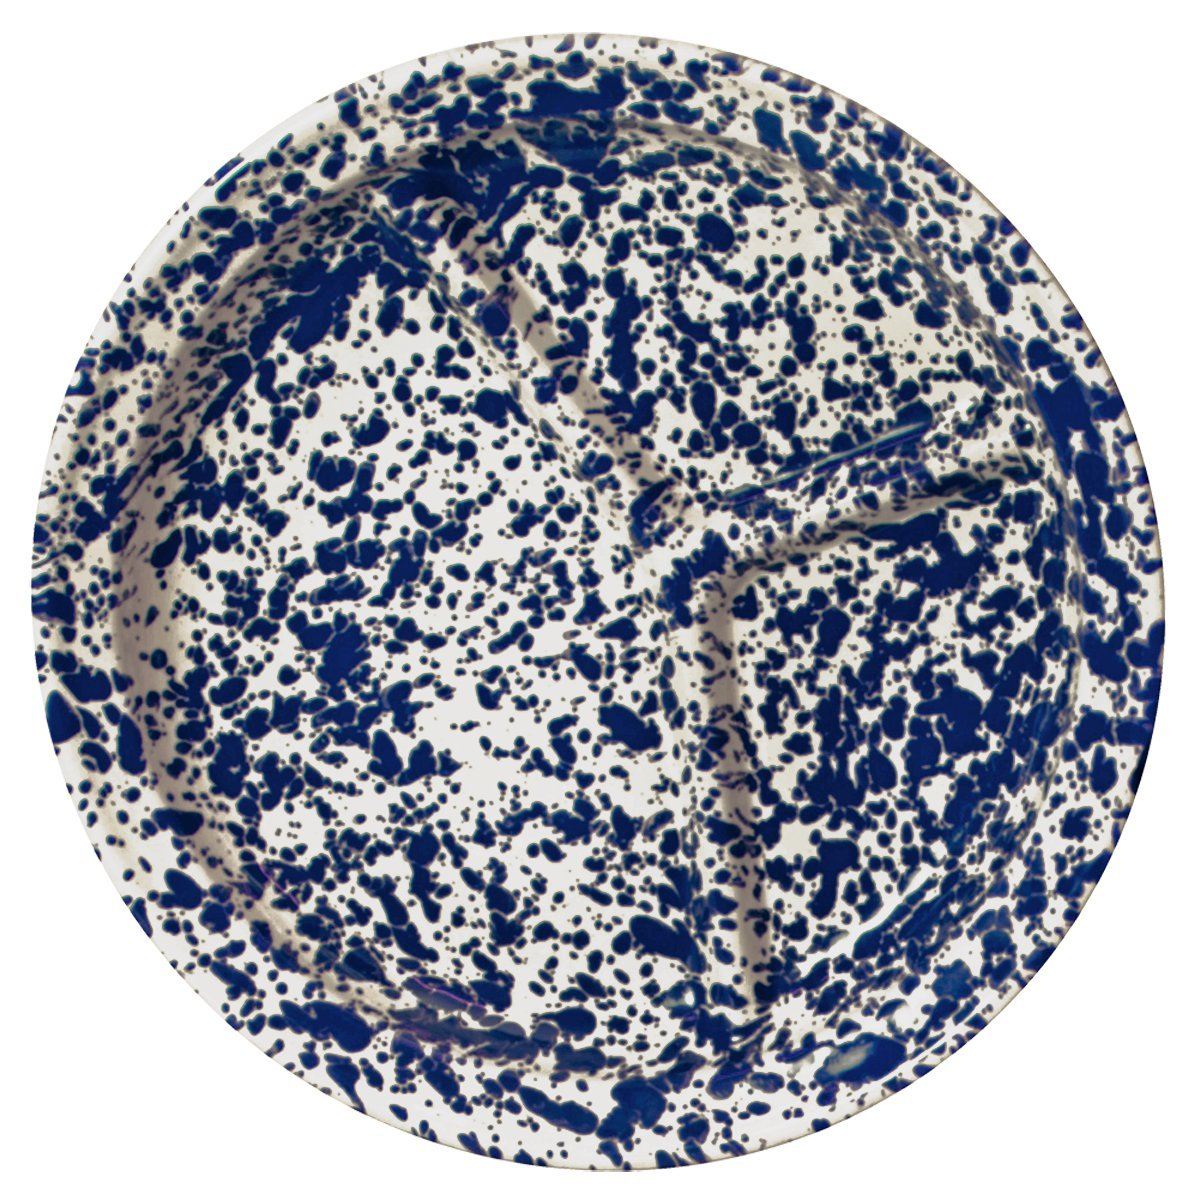 Crow Canyon Divided Camp Plate (Navy Cream Marble)